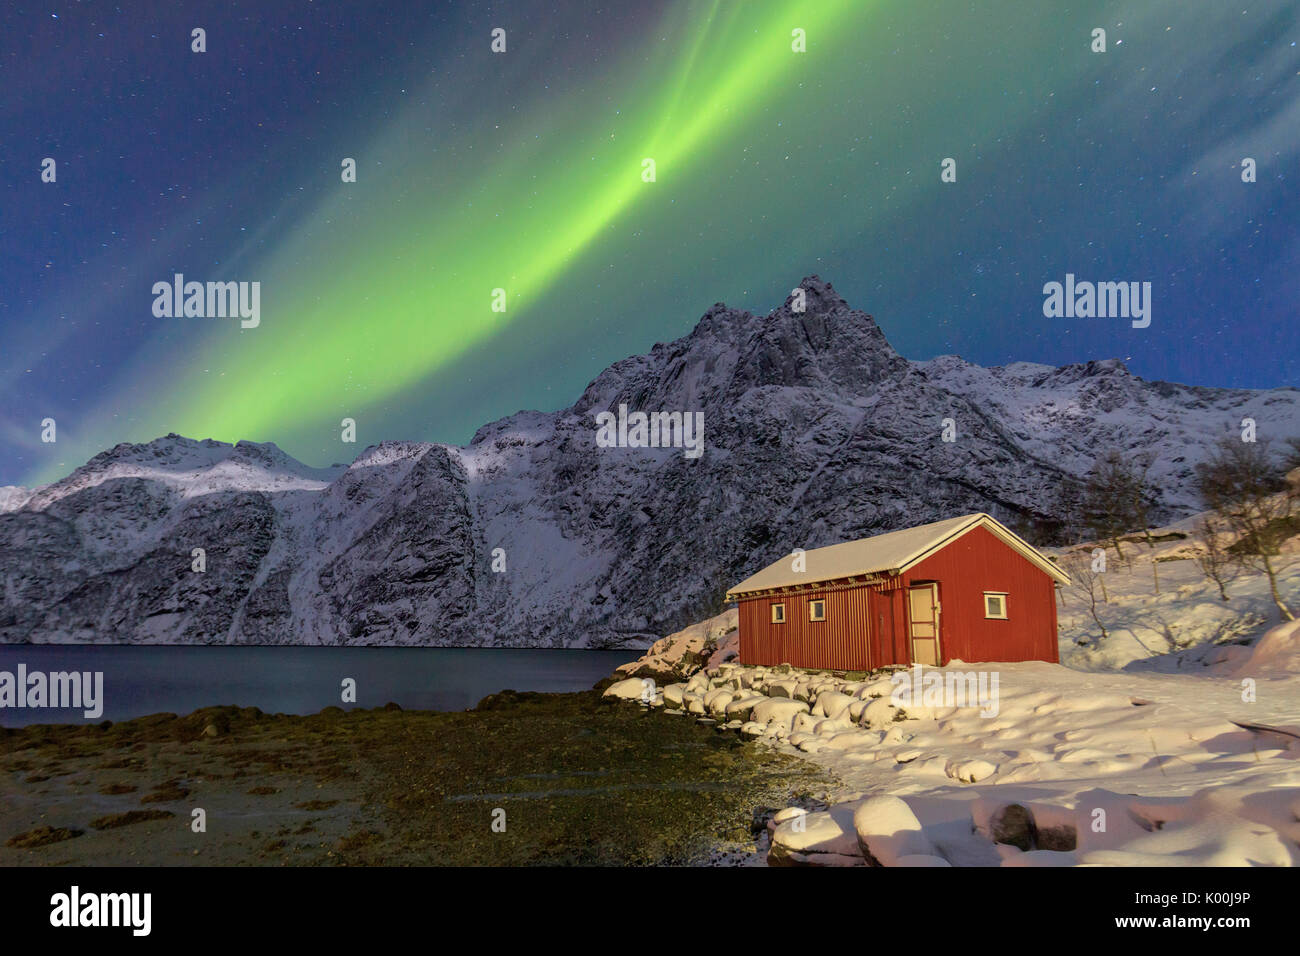 Northern Lights illuminate snowy peaks and the wooden cabin on a starry night at Budalen Svolvaer Lofoten Islands Stock Photo